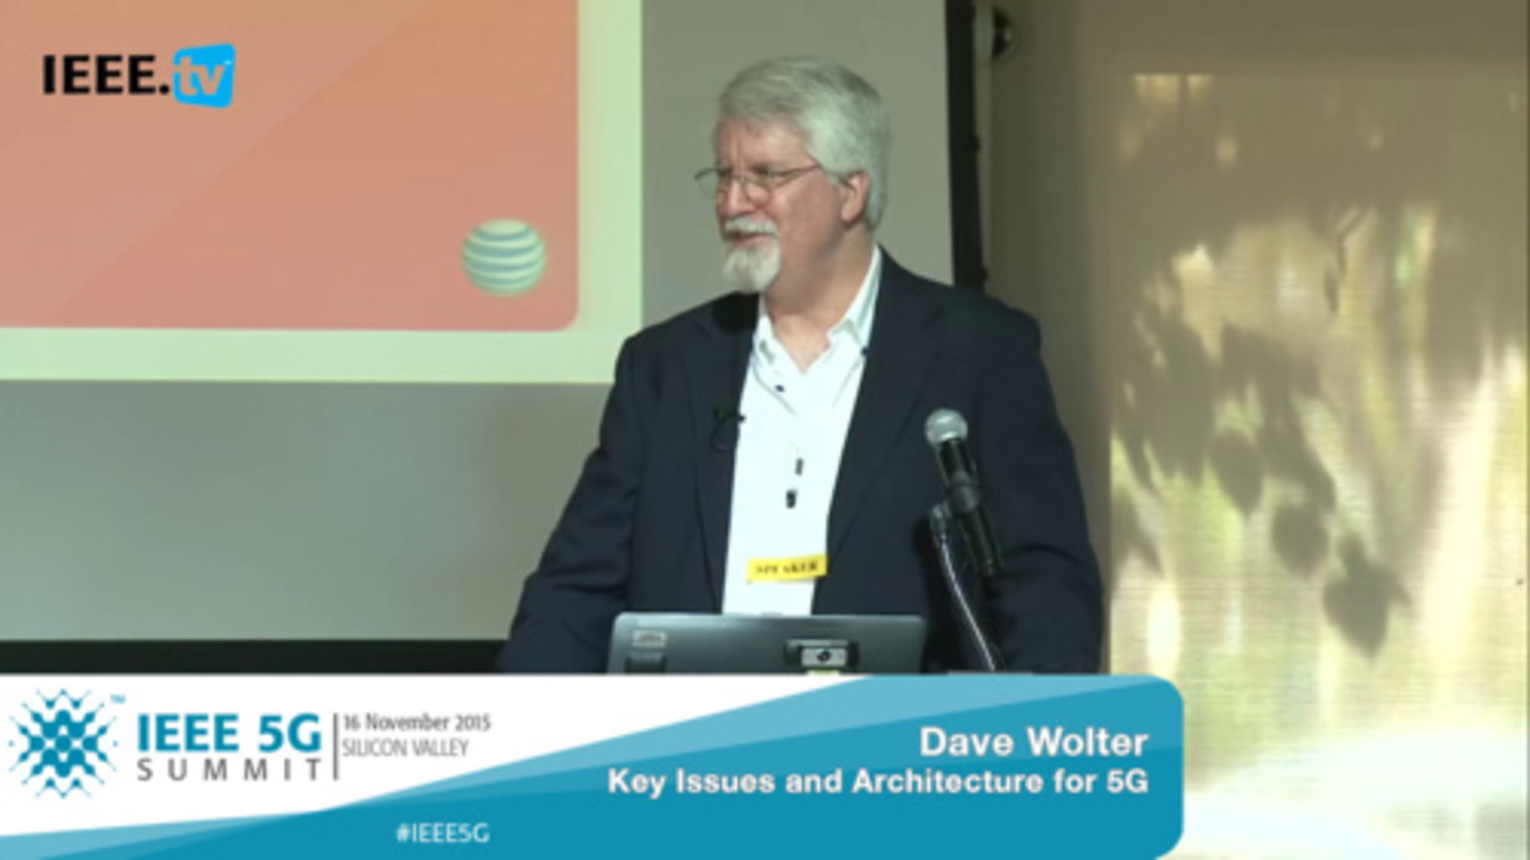 Silicon Valley 5G Summit 2015 - Dave Wolter - Key Issues and Architecture for 5G